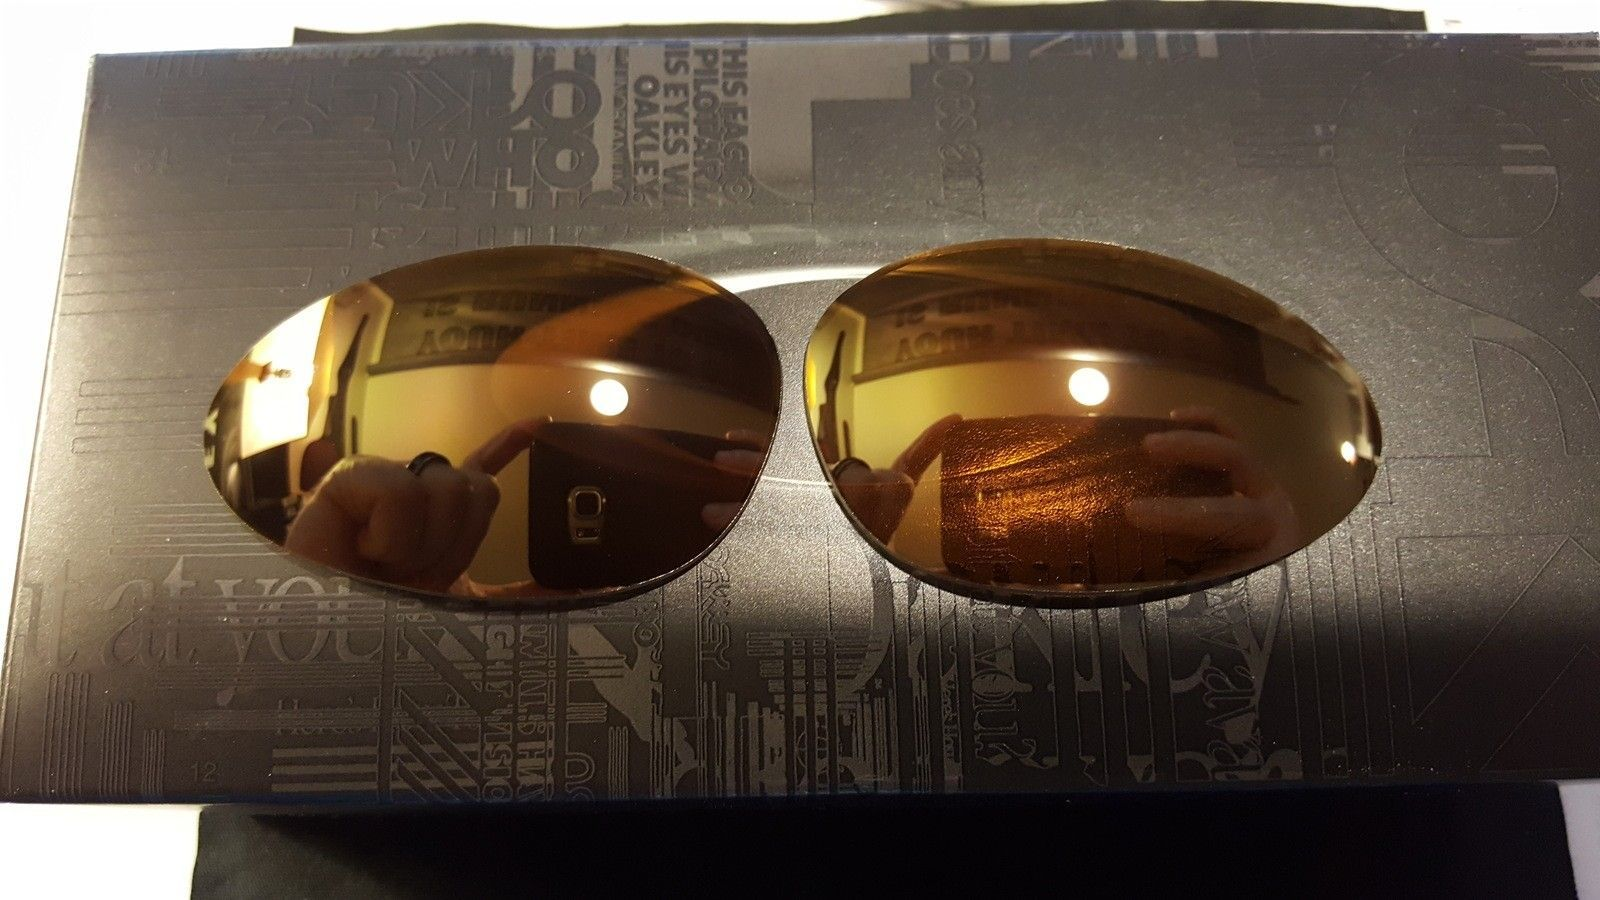 C Wire gold iridium lenses - 20160114_170643.jpg